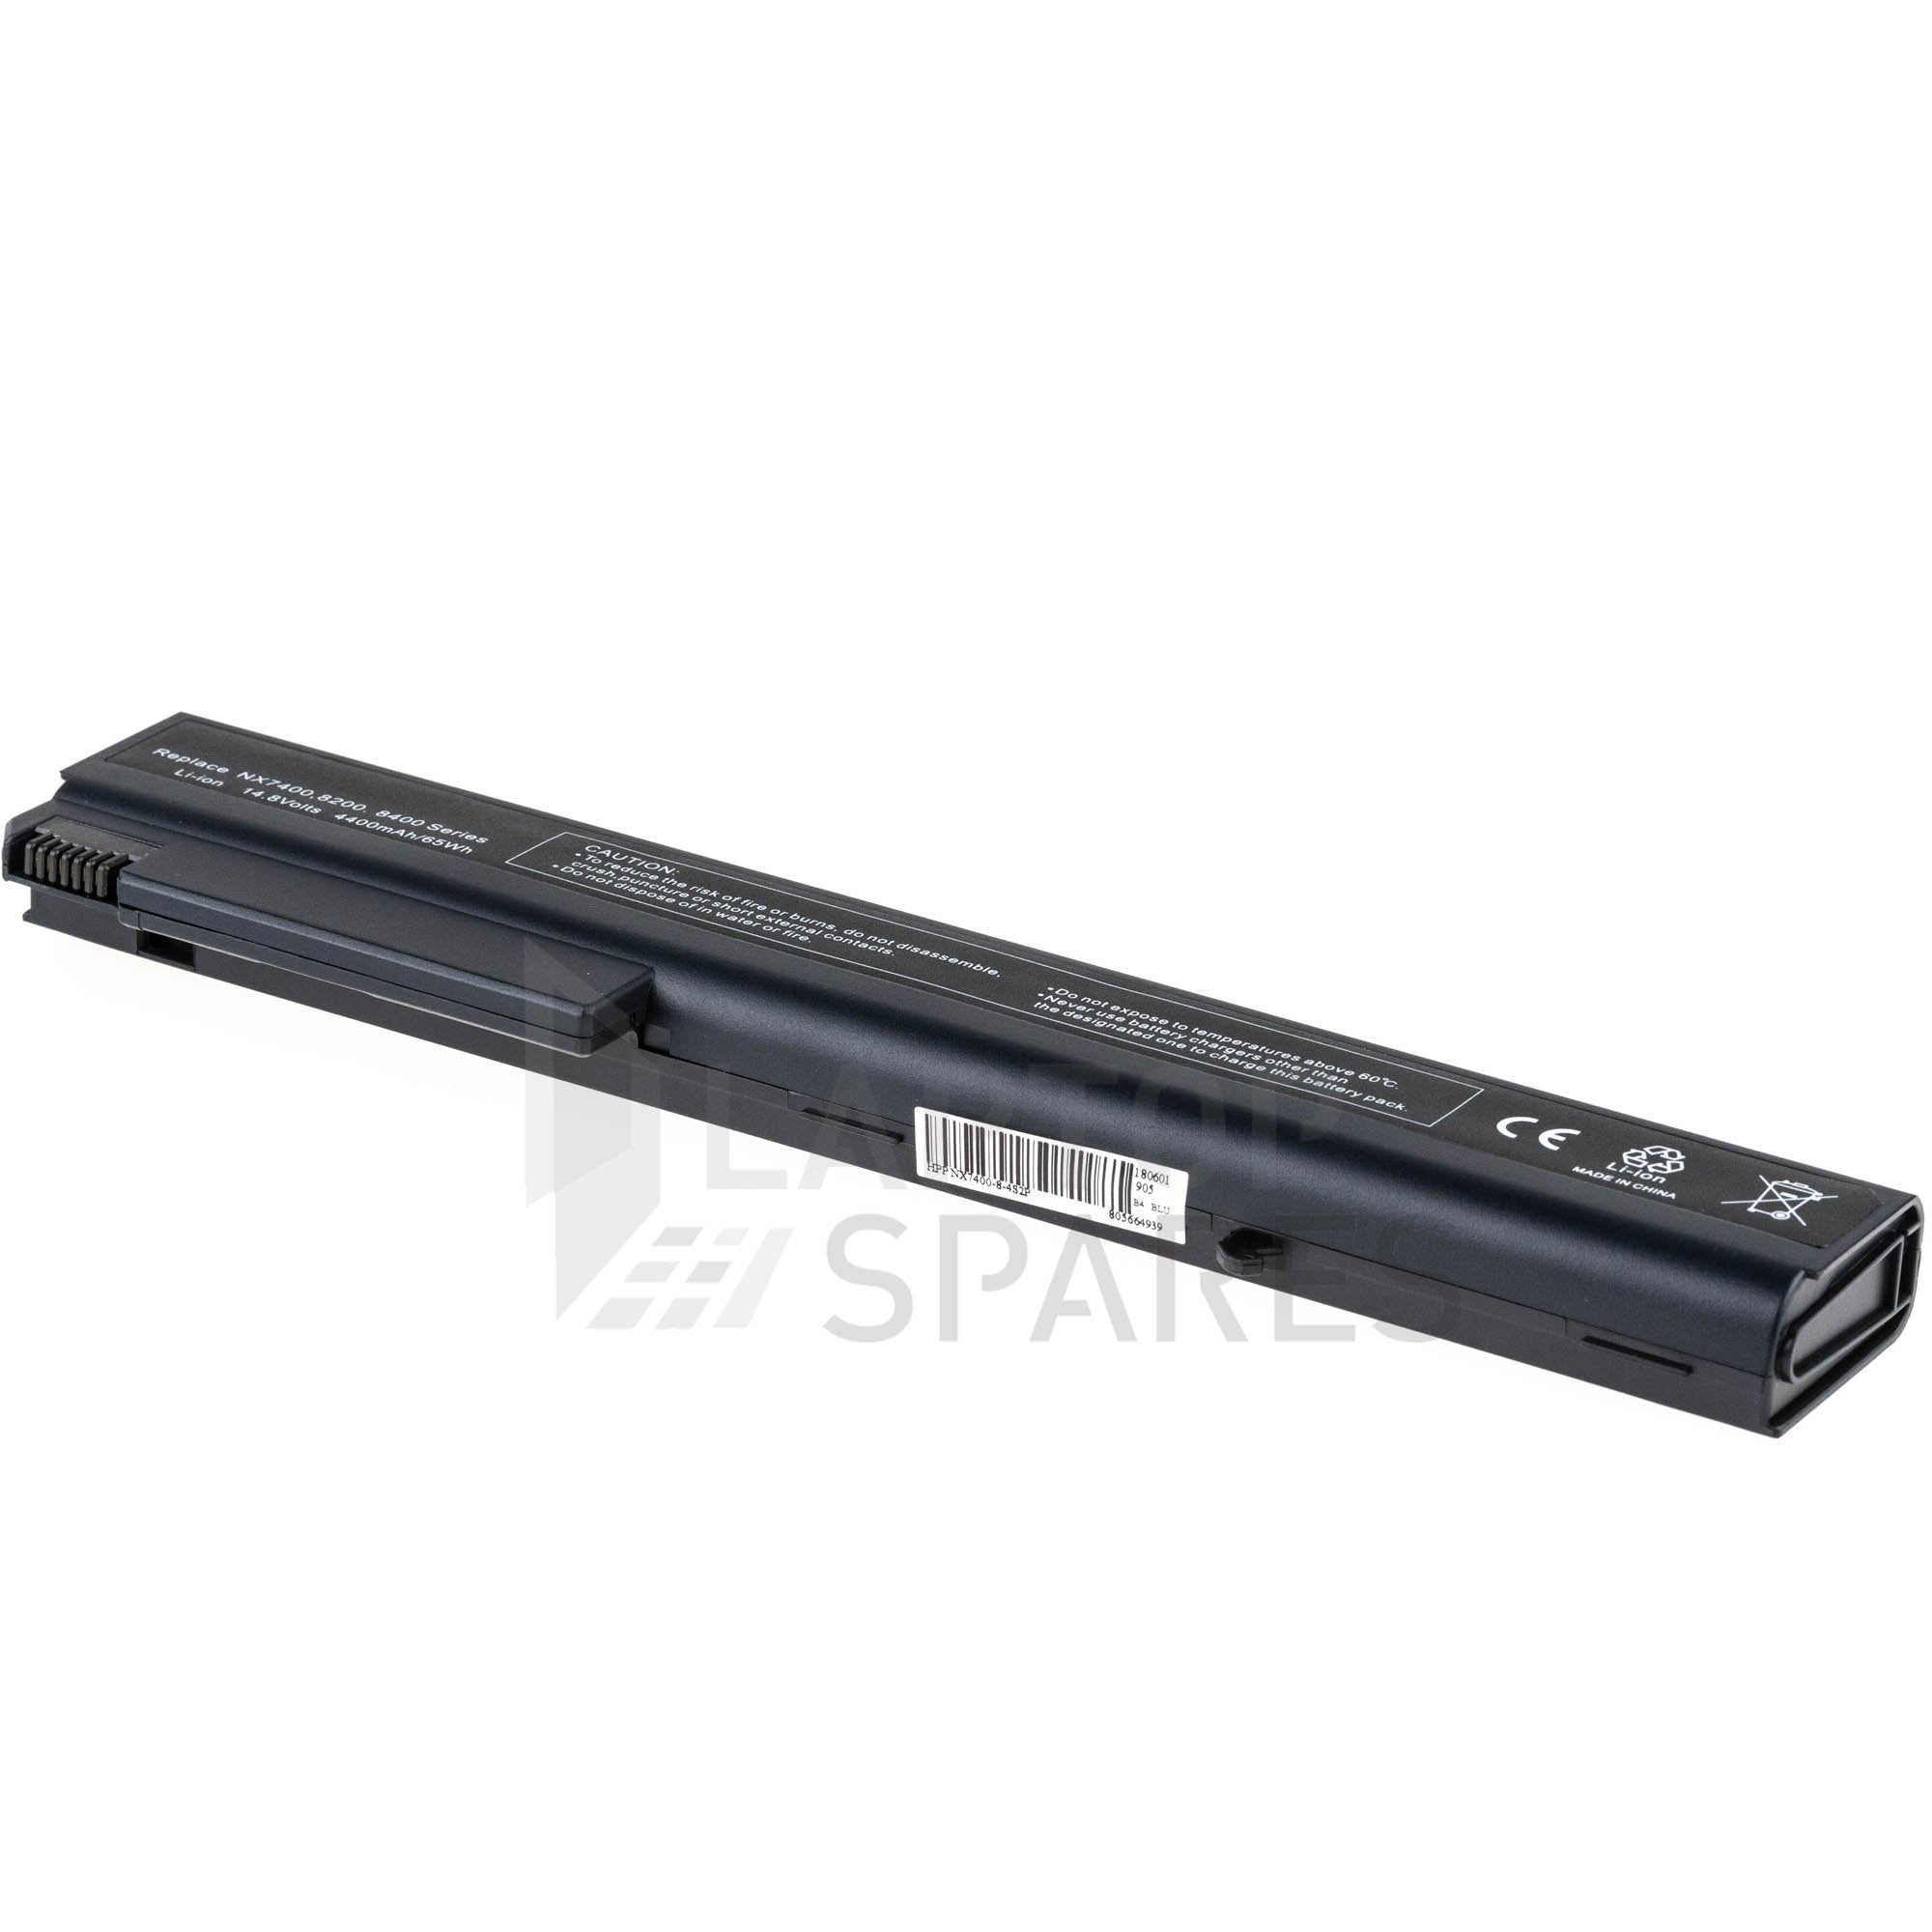 HP Business Notebook 9400 4400mAh 6 Cell Battery